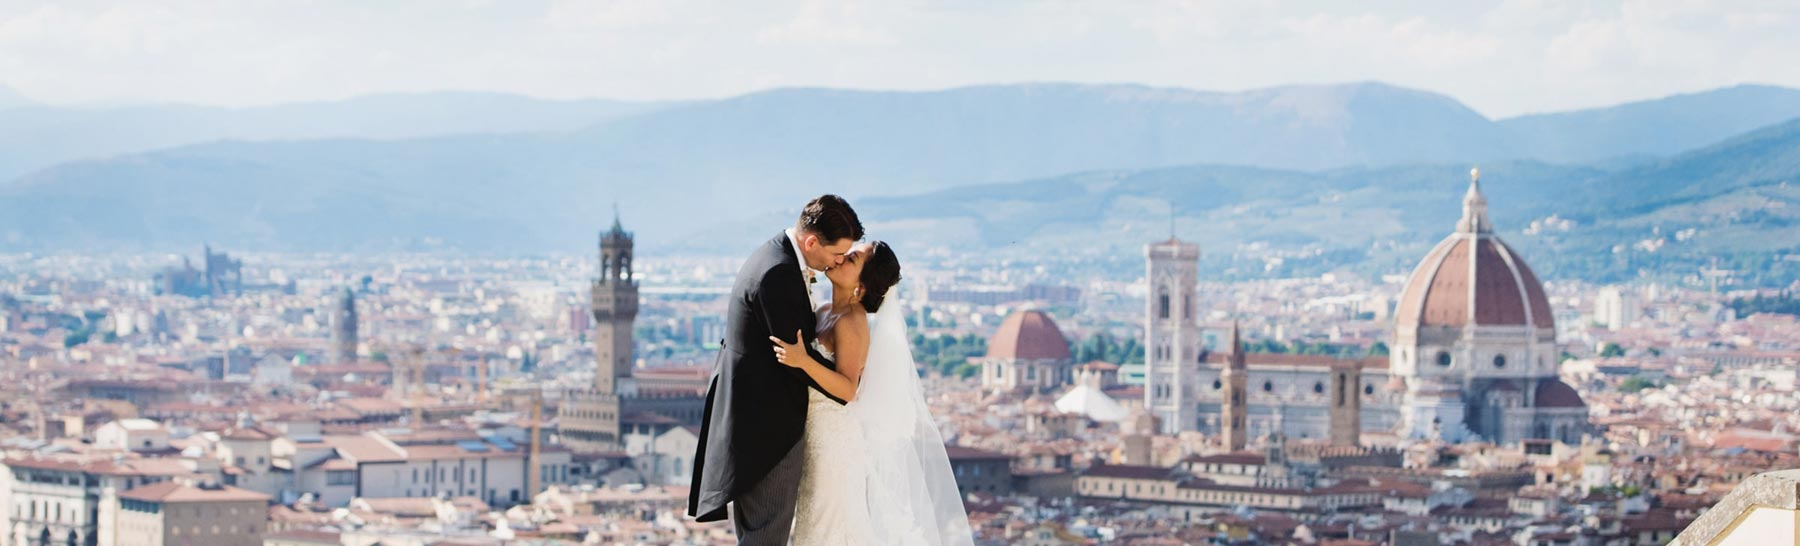 WEDDINGS IN ITALY WITH A VIEW